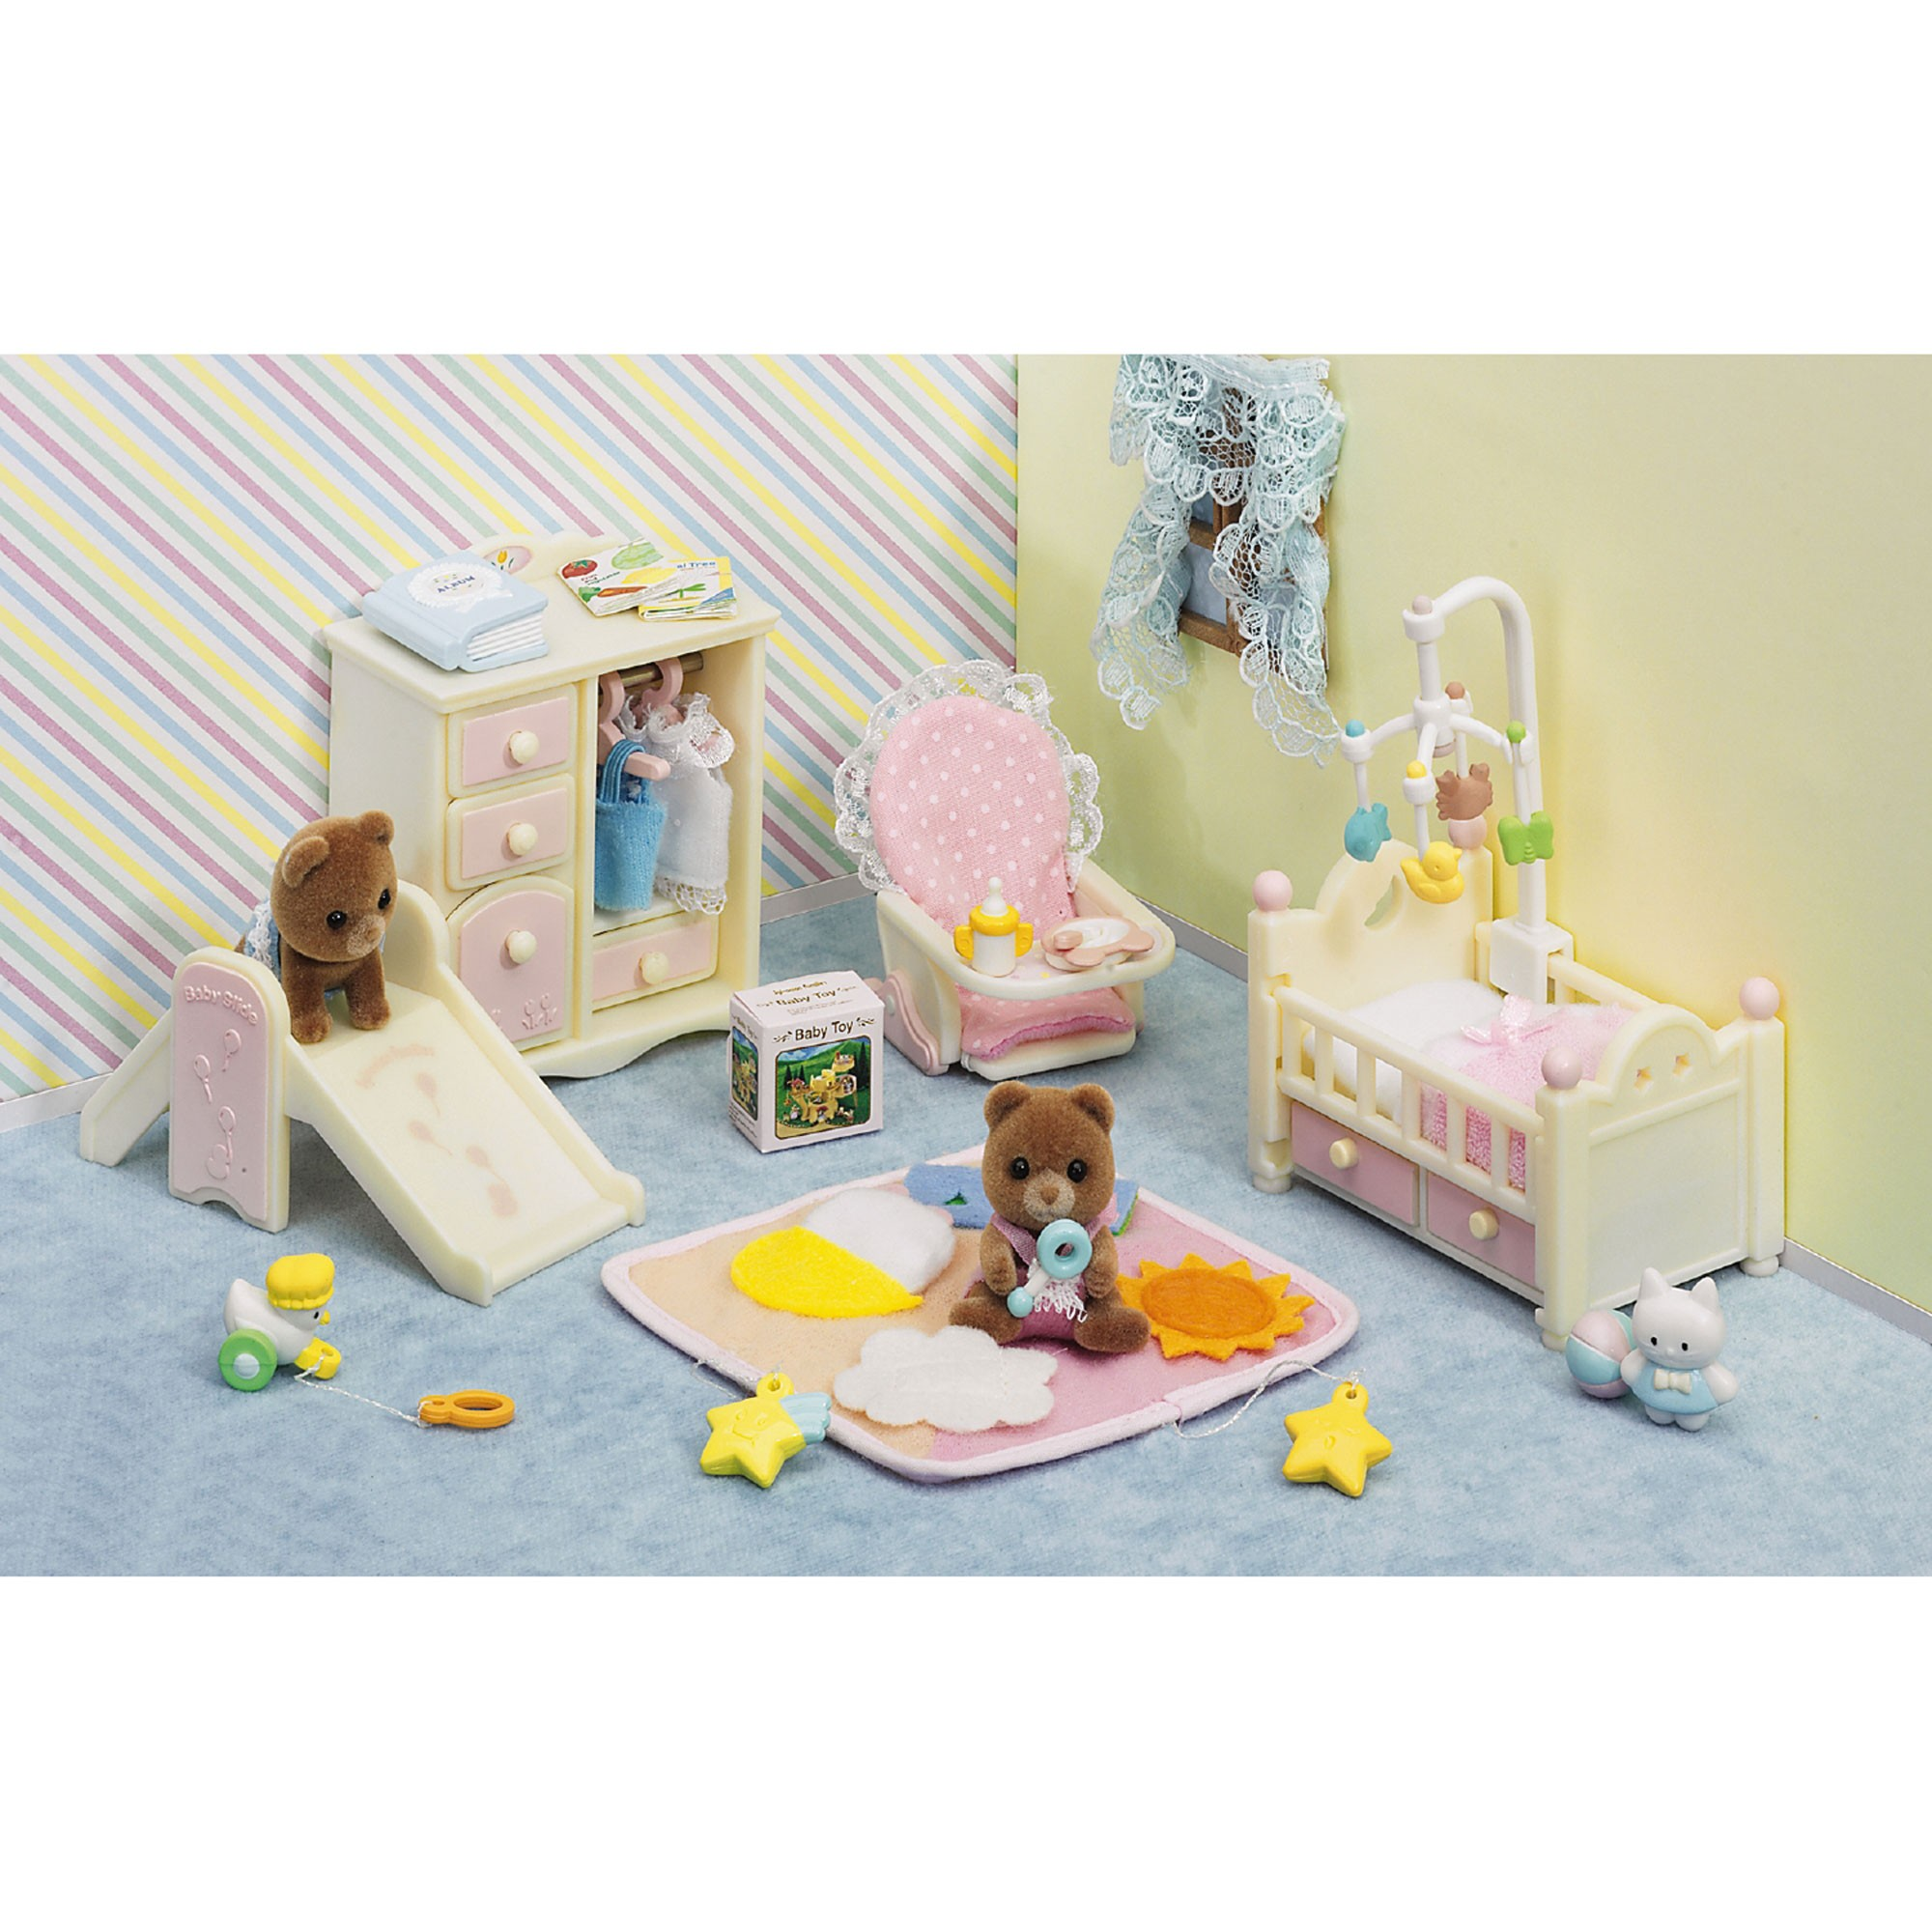 Calico Critters Babys Nursery Set 2000x2000